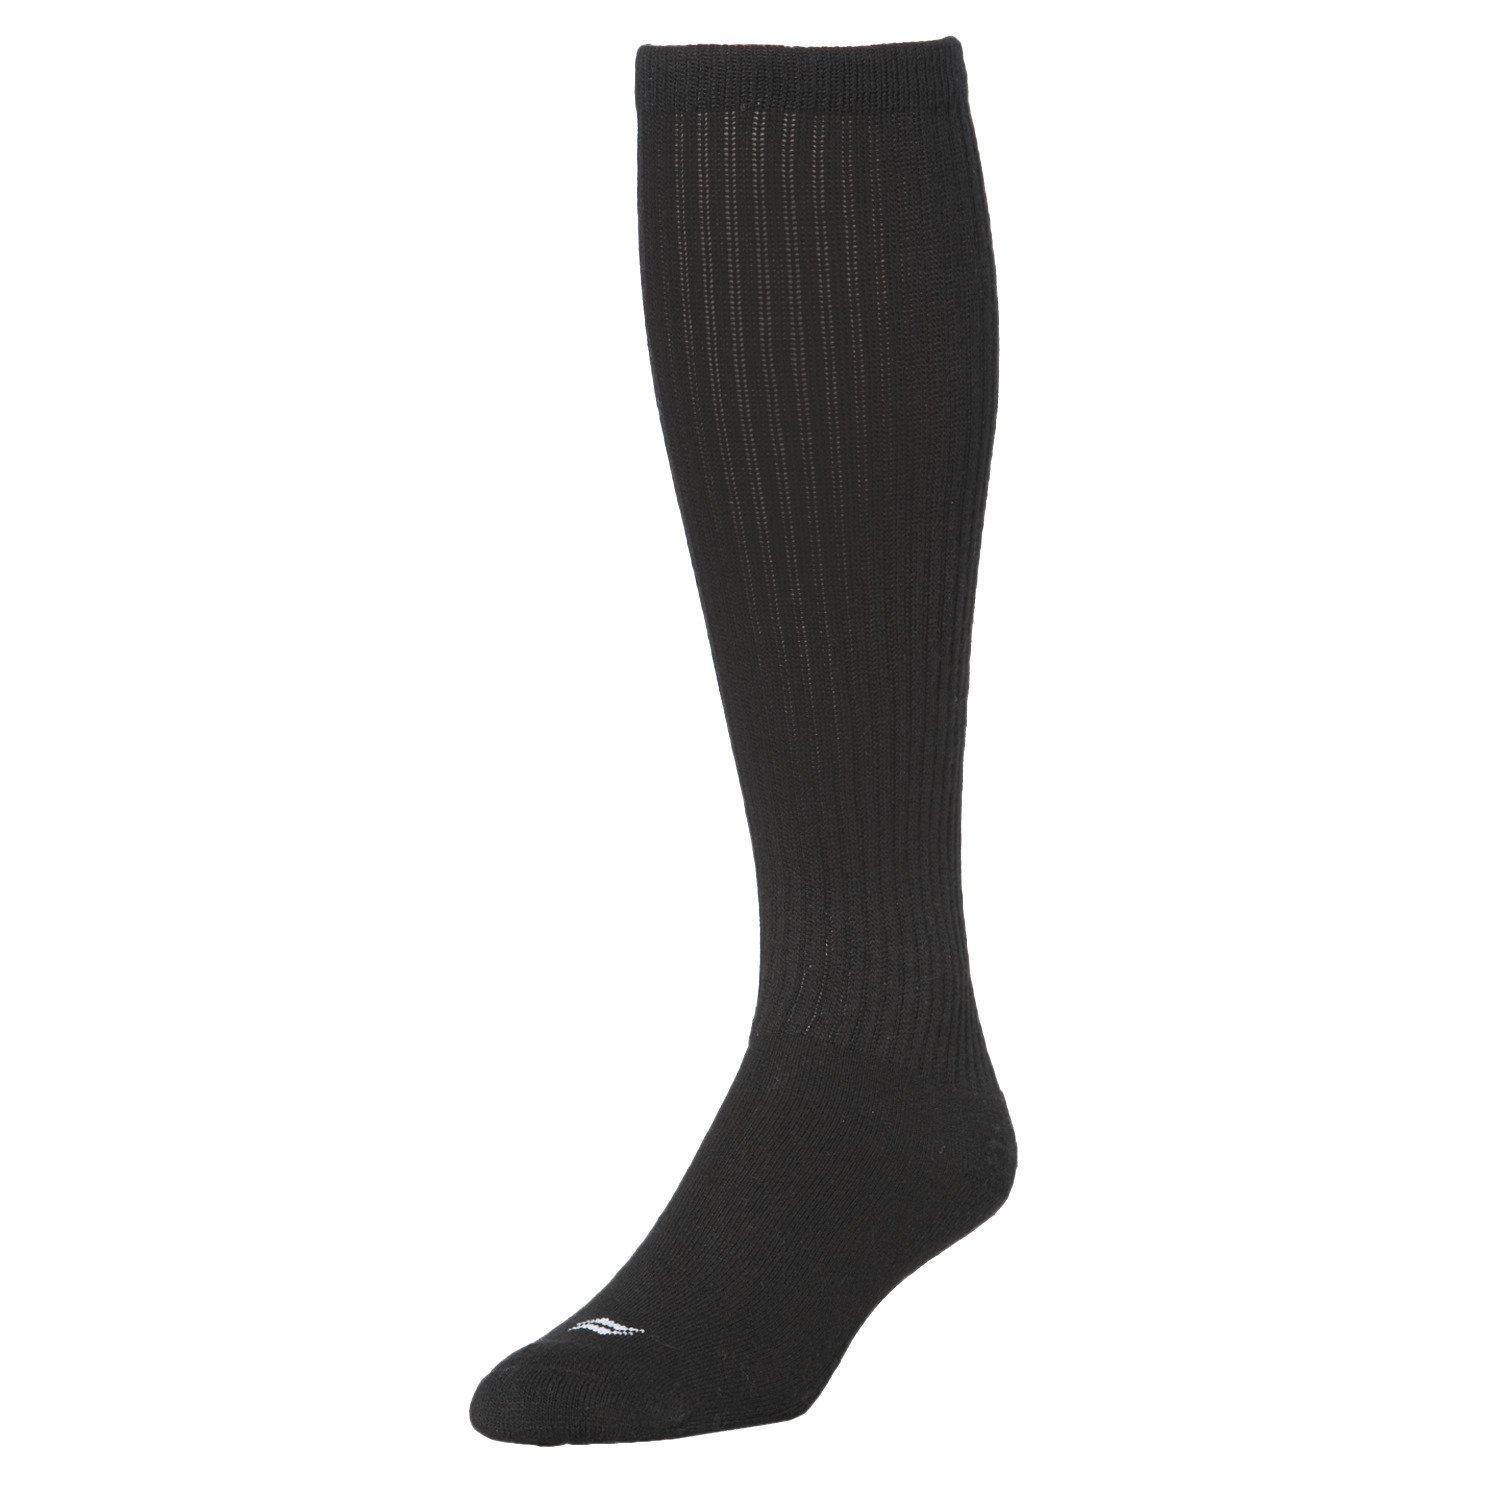 e1611a2e5 Display product reviews for Sof Sole Team Performance Football Socks Large